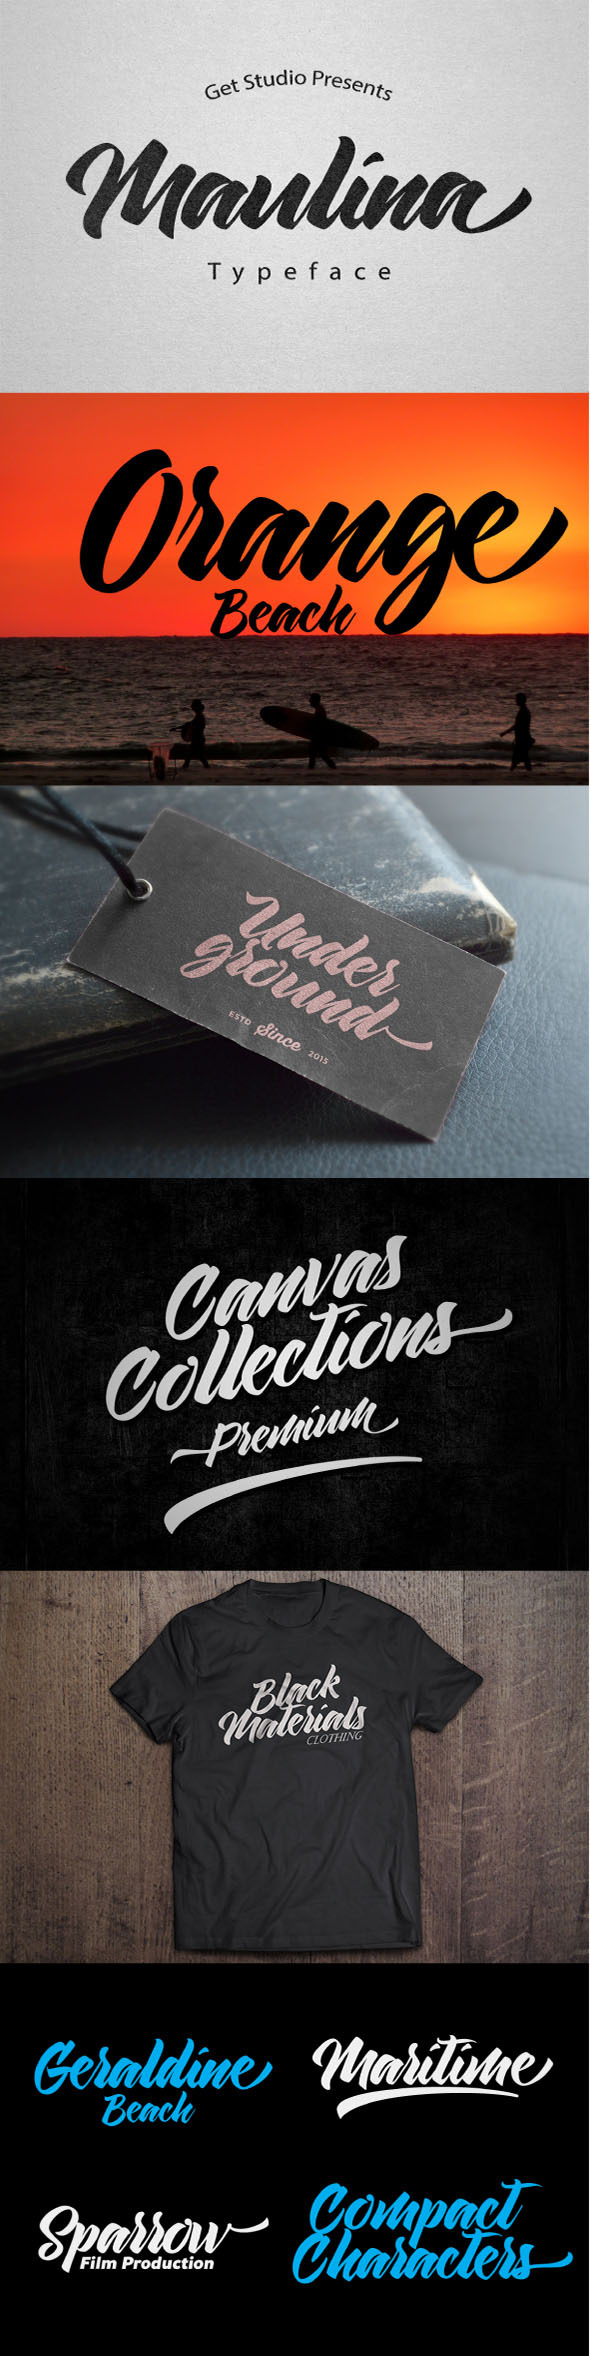 Maulina Typeface - Calligraphy Script